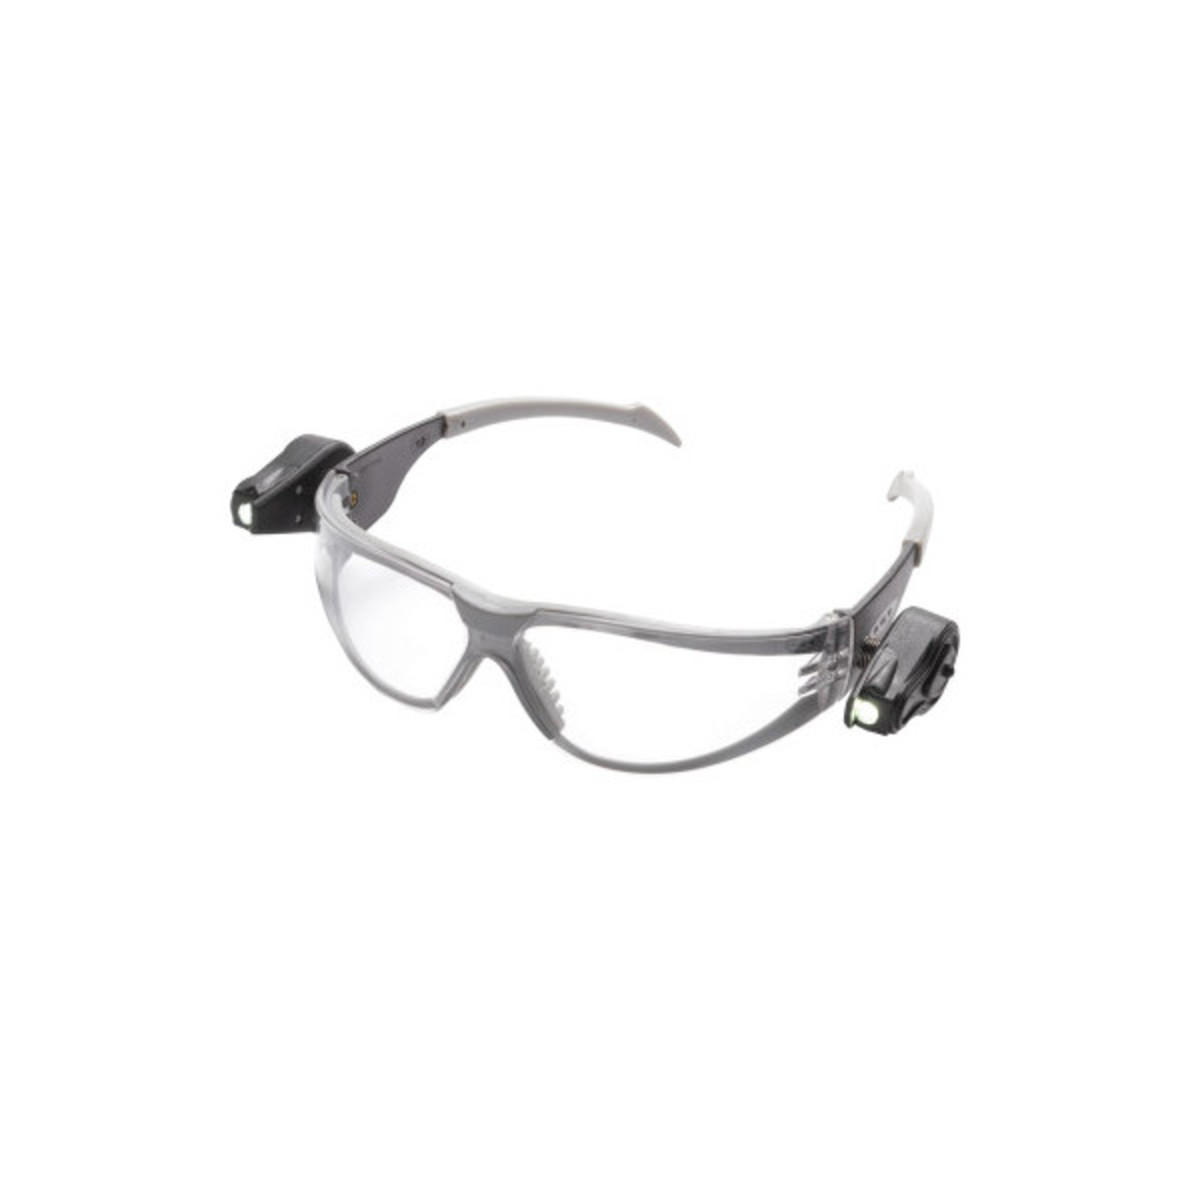 3M™ Personal Safety Light Vision™ 2 Protective Eyewear